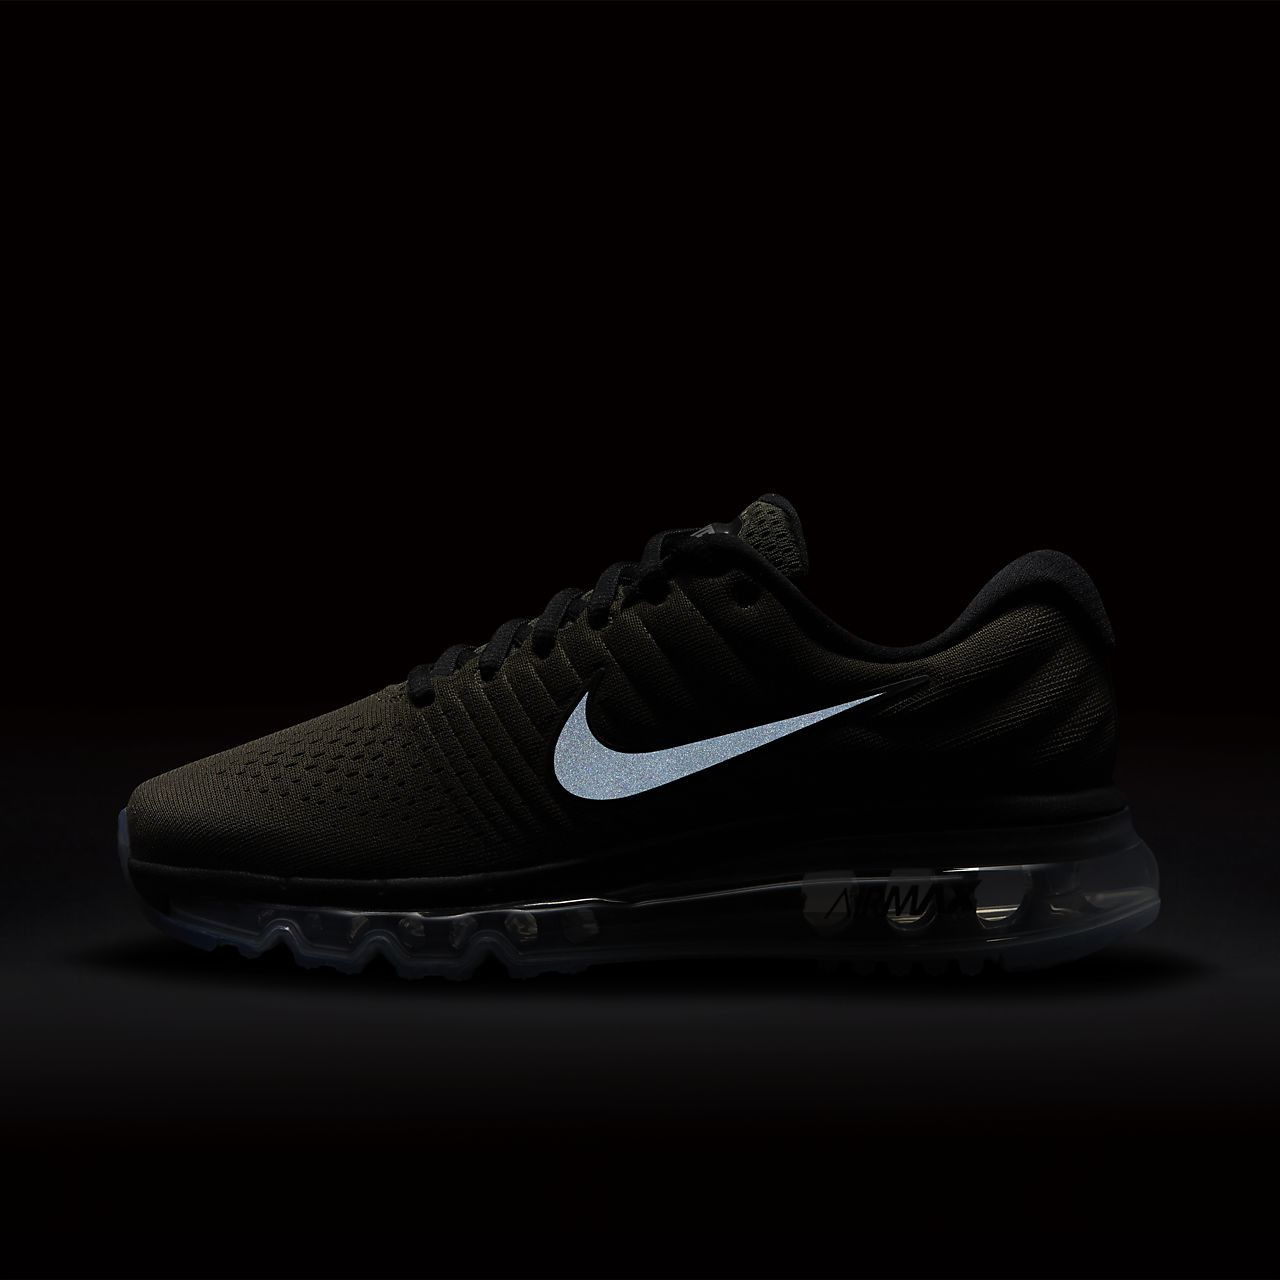 nike air max 2017 big kids' running shoe nz